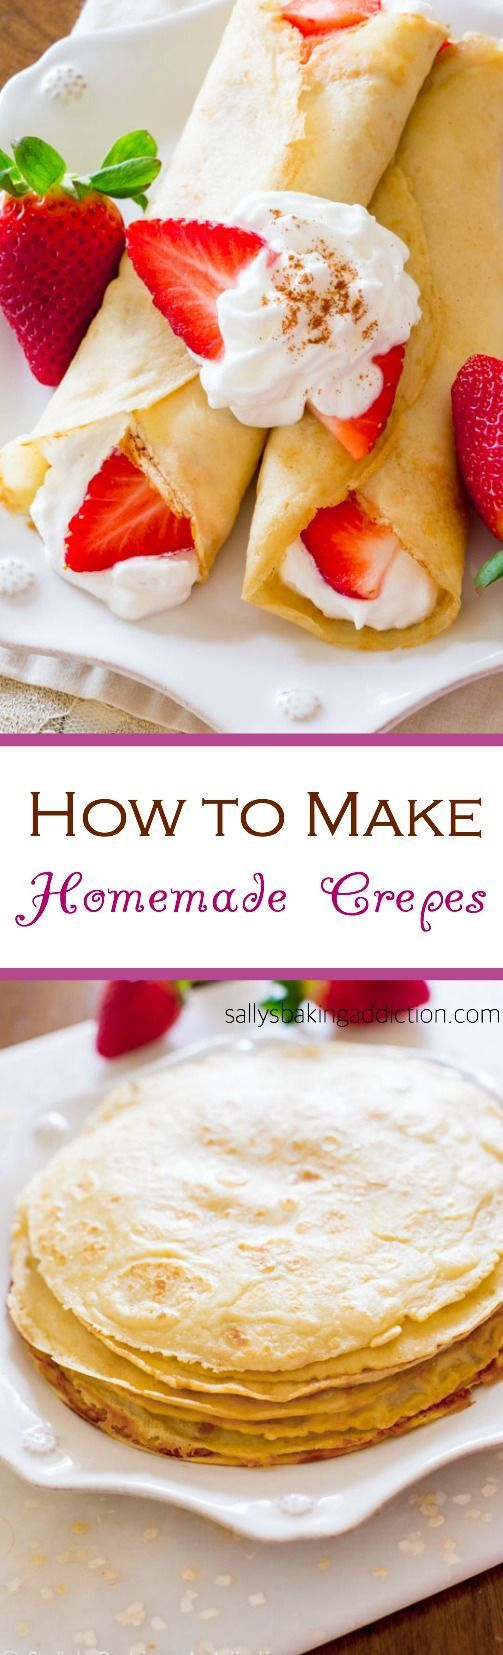 Step-by-step guide to making light as air, delicious Homemade Crepes with fresh whipped cream